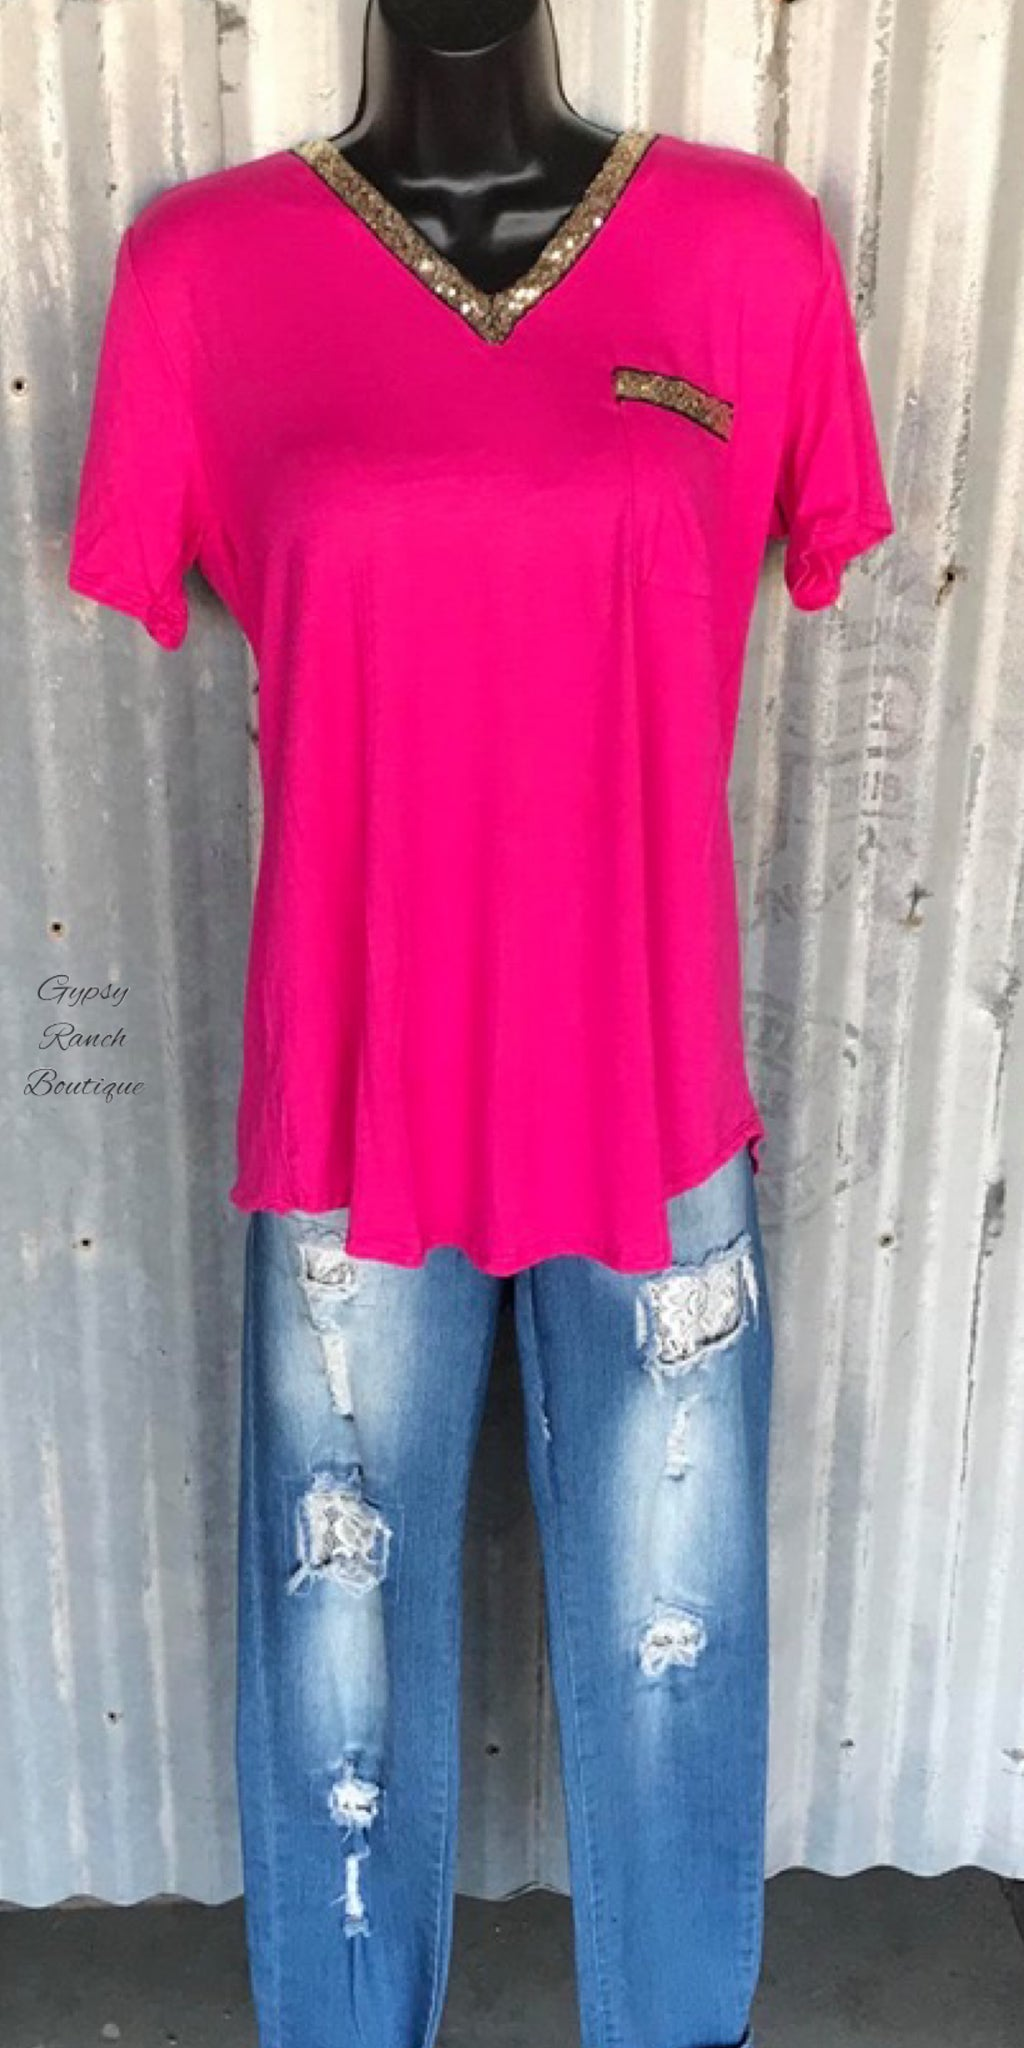 Just Between Us Hot Pink Sequin Top - Also in Plus Size